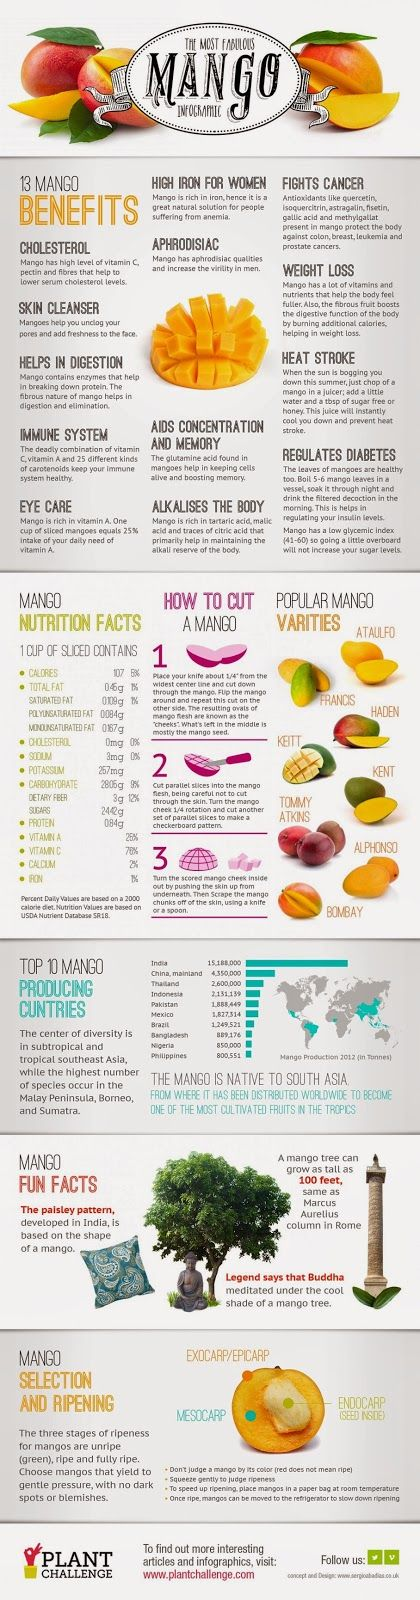 Mango Fruit health benefits, key nutrients, varieties, stages of ripeness and other interesting facts.  All About Mangoes #Infographic